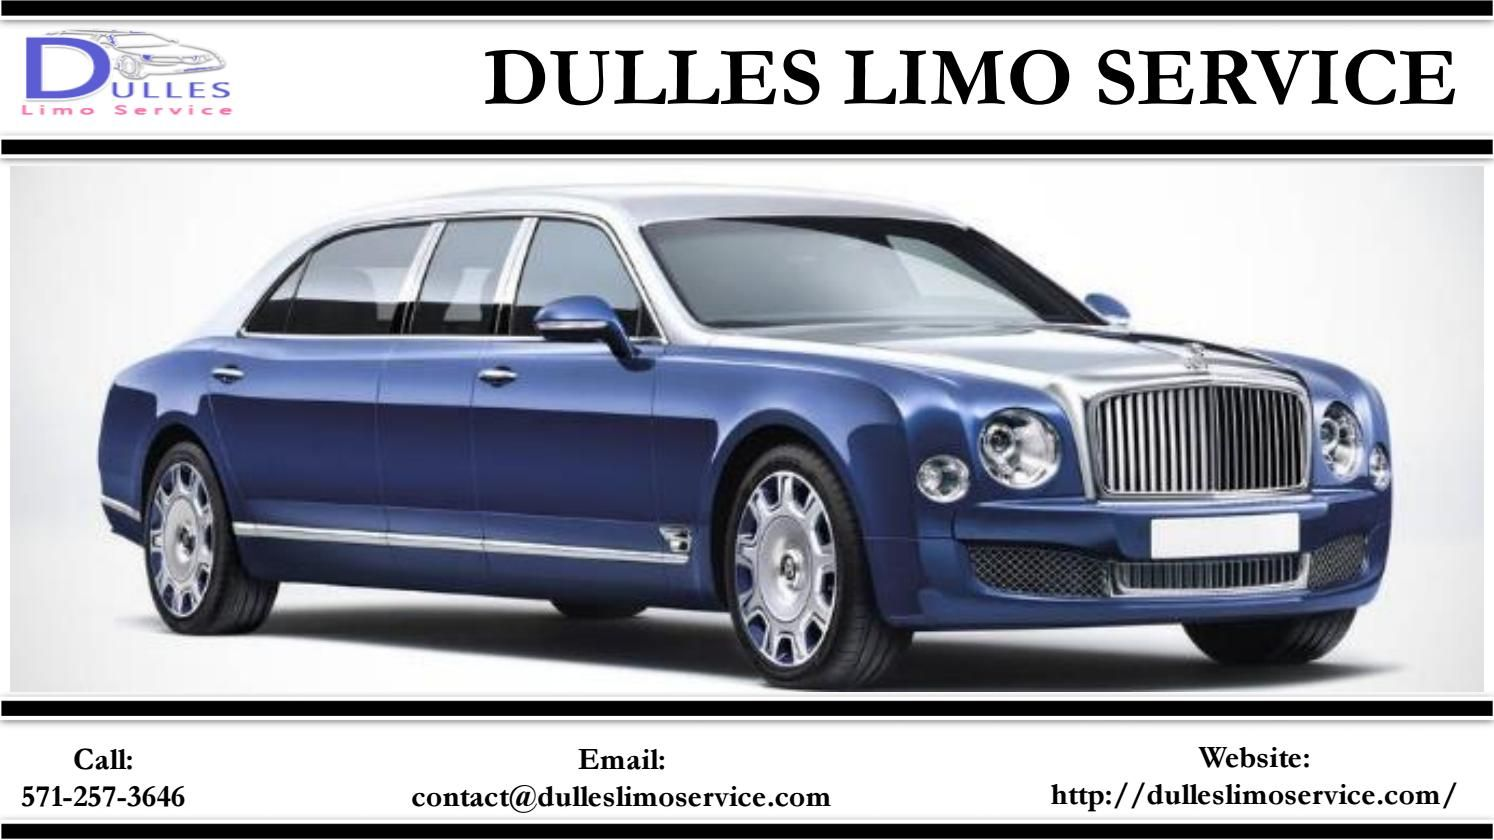 Dulles Limo Service Provides Reliable Transportation For All Kinds Of Special Events Bentley Limousine Limousine Limousine Car